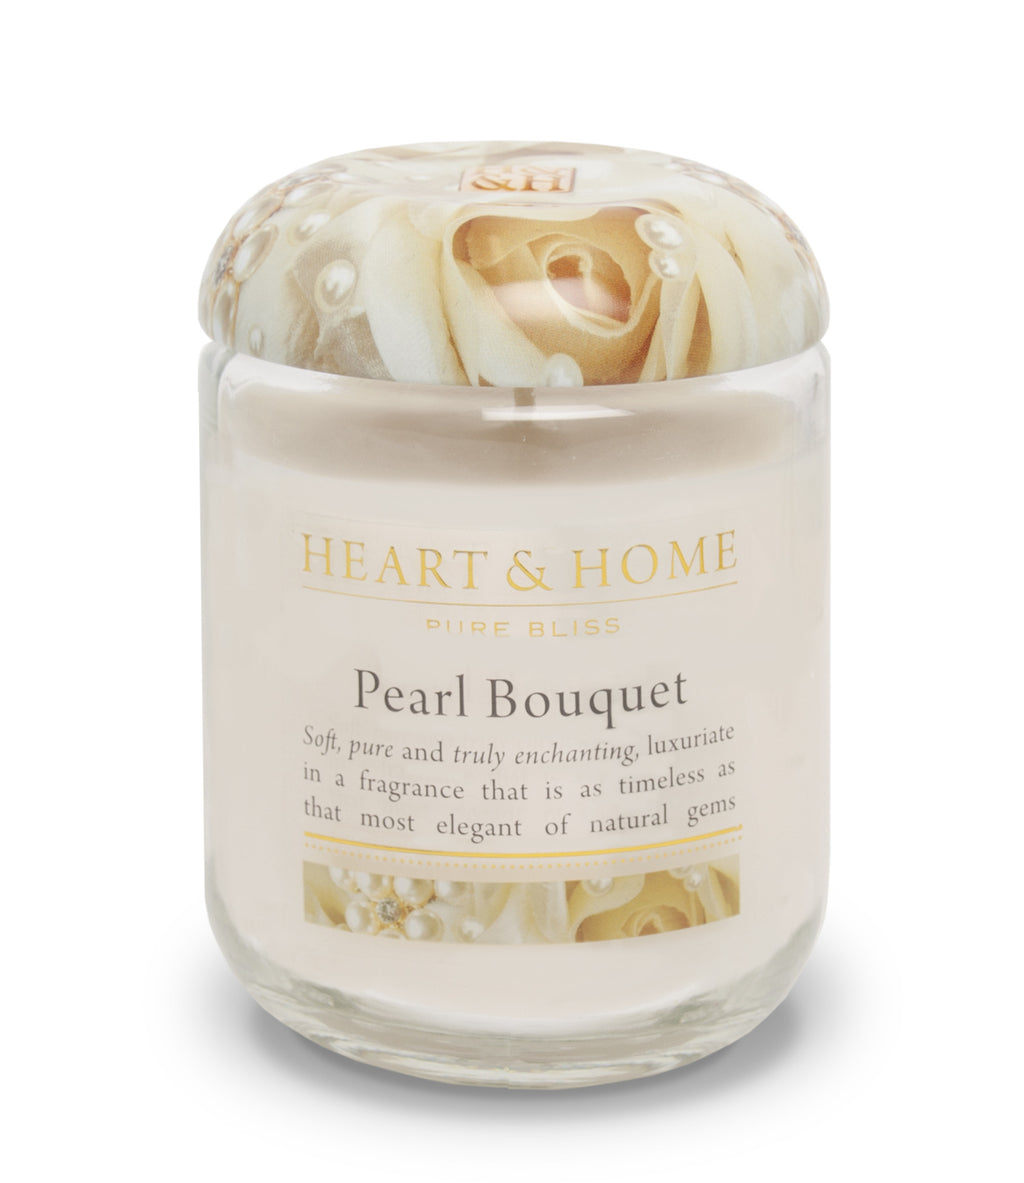 Pearl Bouquet - Large Candle - From Heart and Home